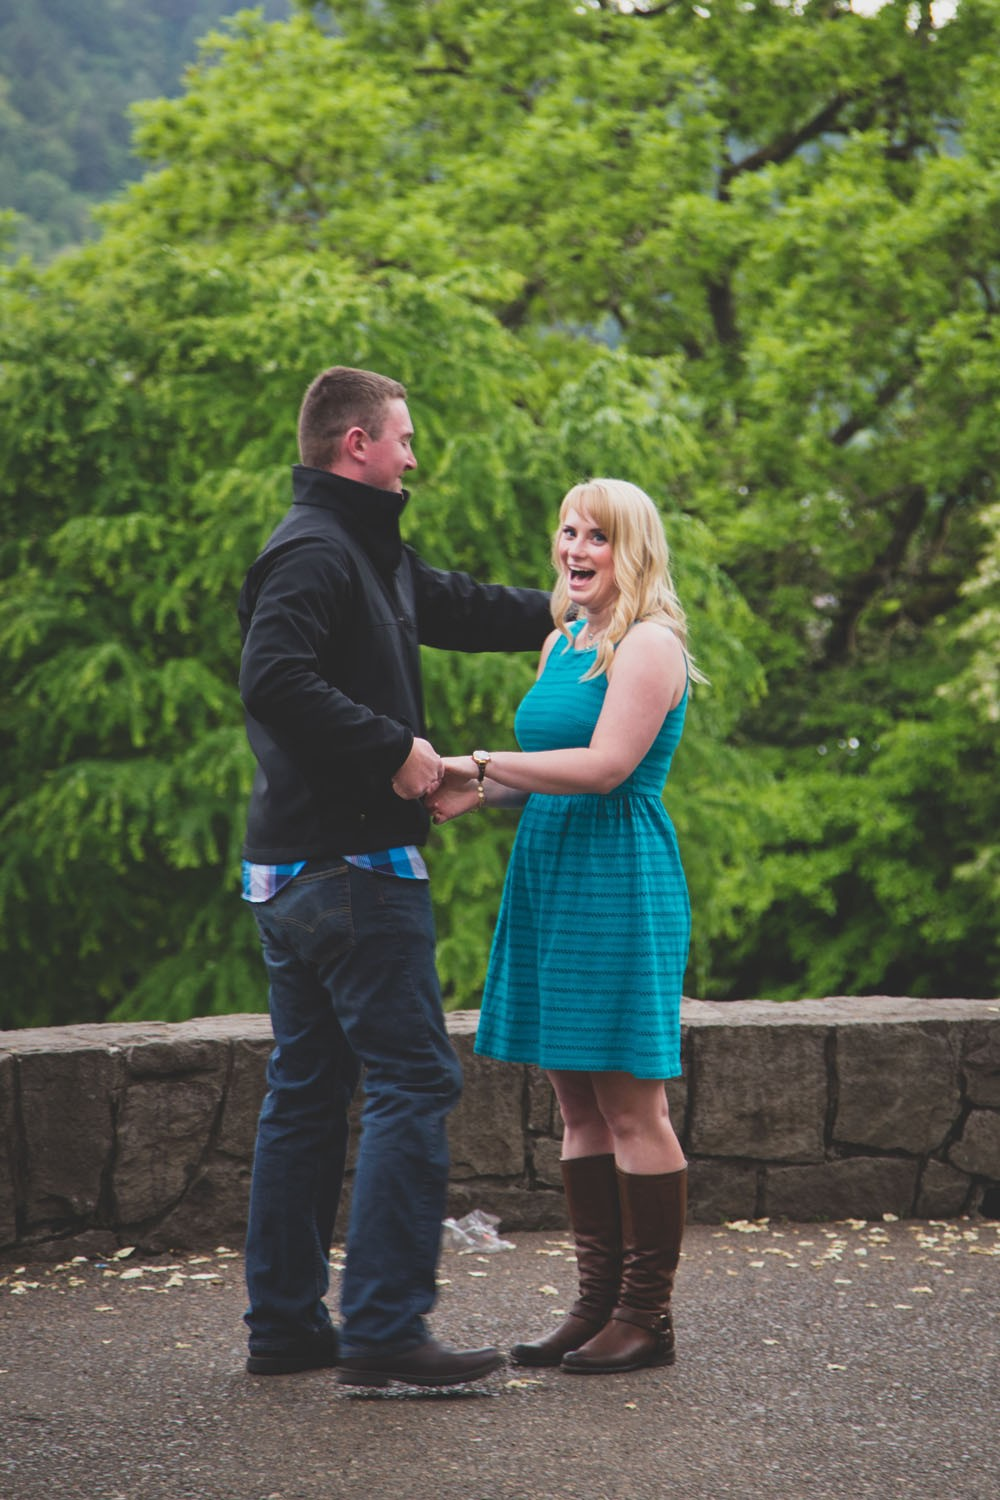 Rachael&Brandon Proposal Cat Dossett I Take Photos-8